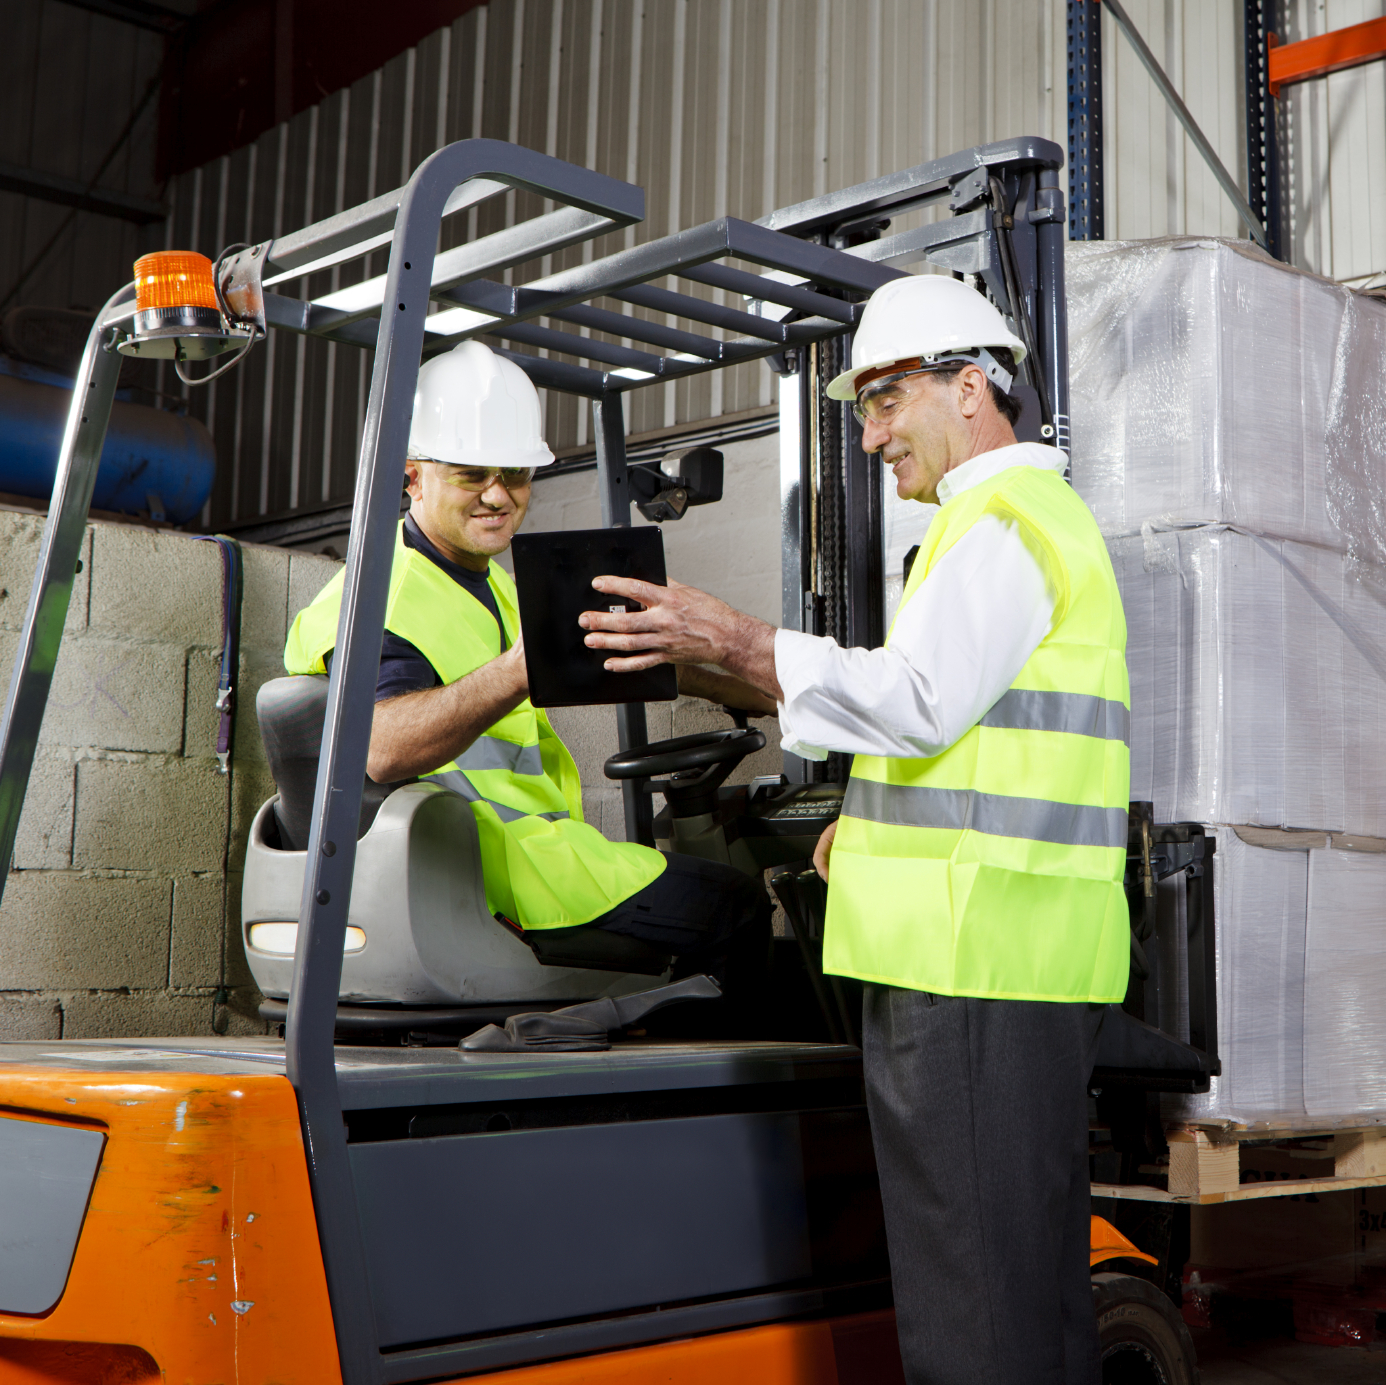 Two men wearing safety gear working in a warehouse with a forklit. One man showing the other information on a digital tablet.